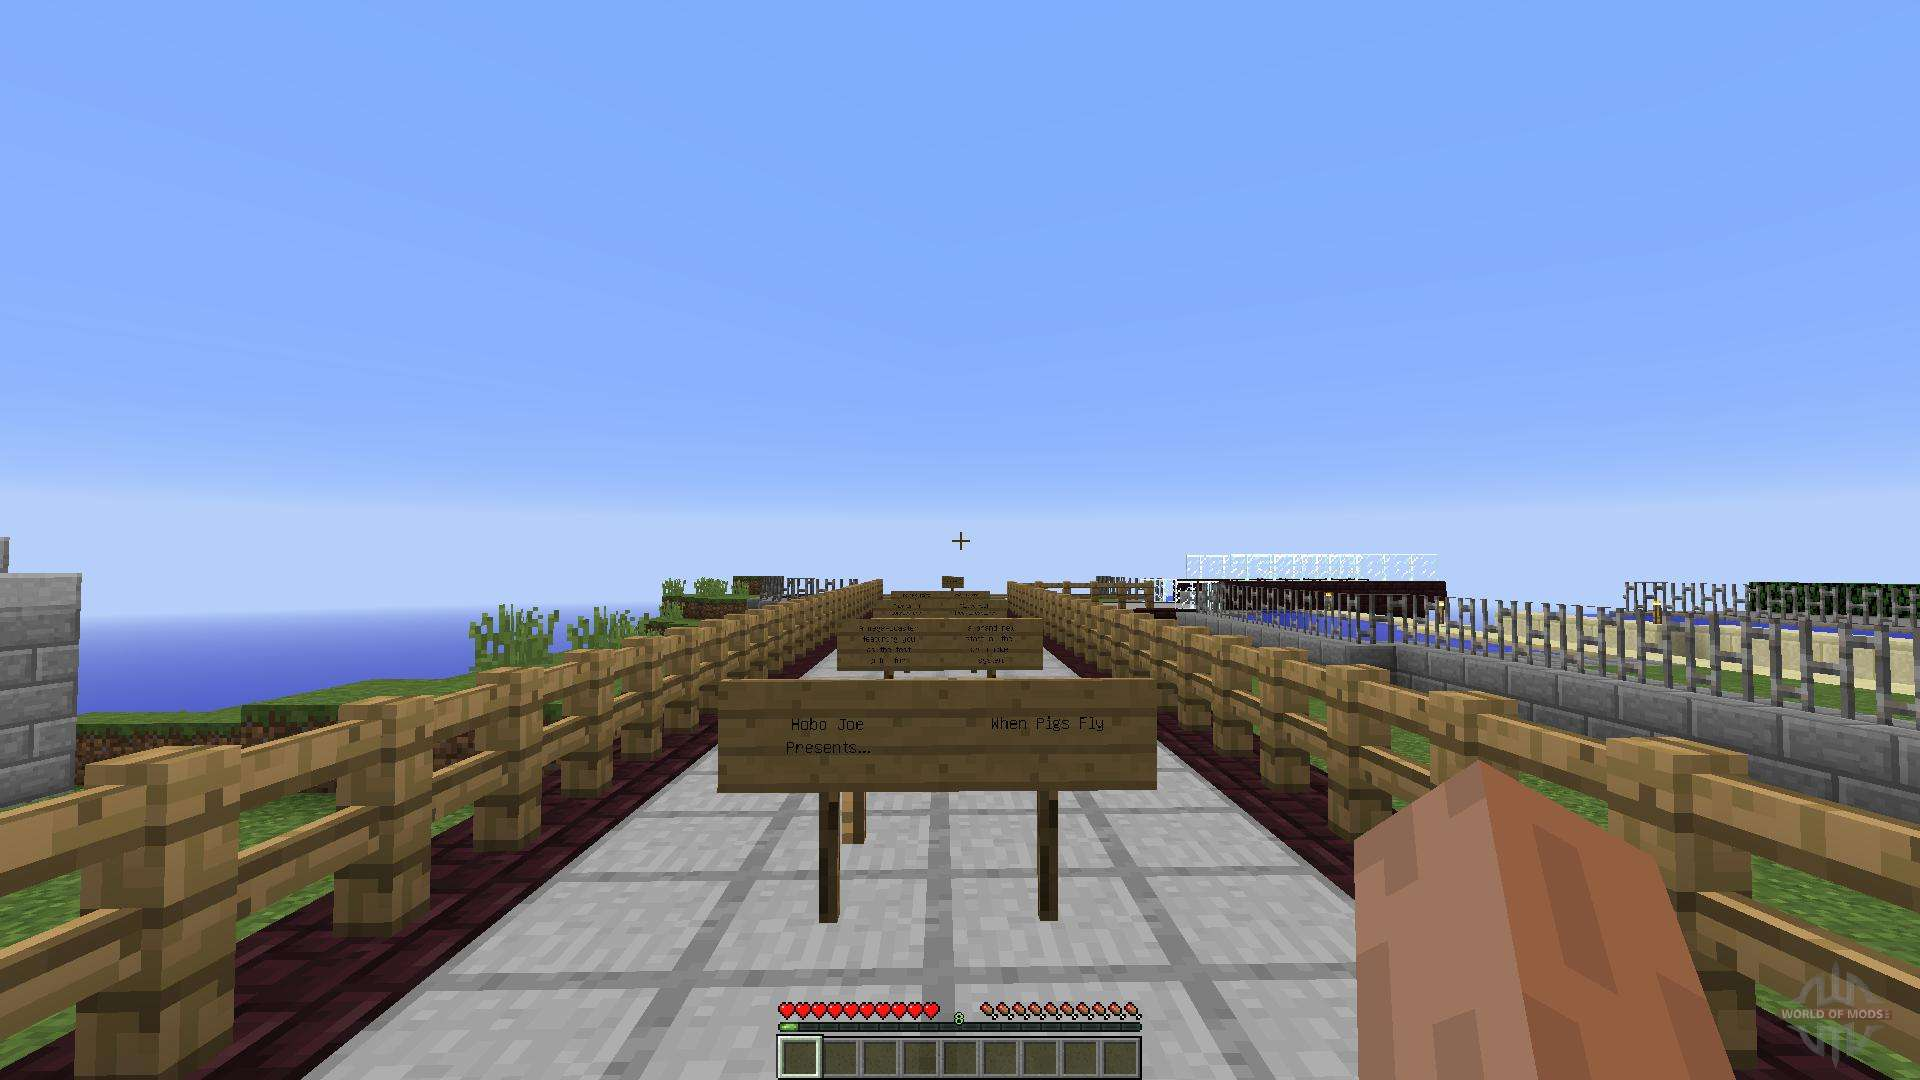 how to make a pig fly in minecraft